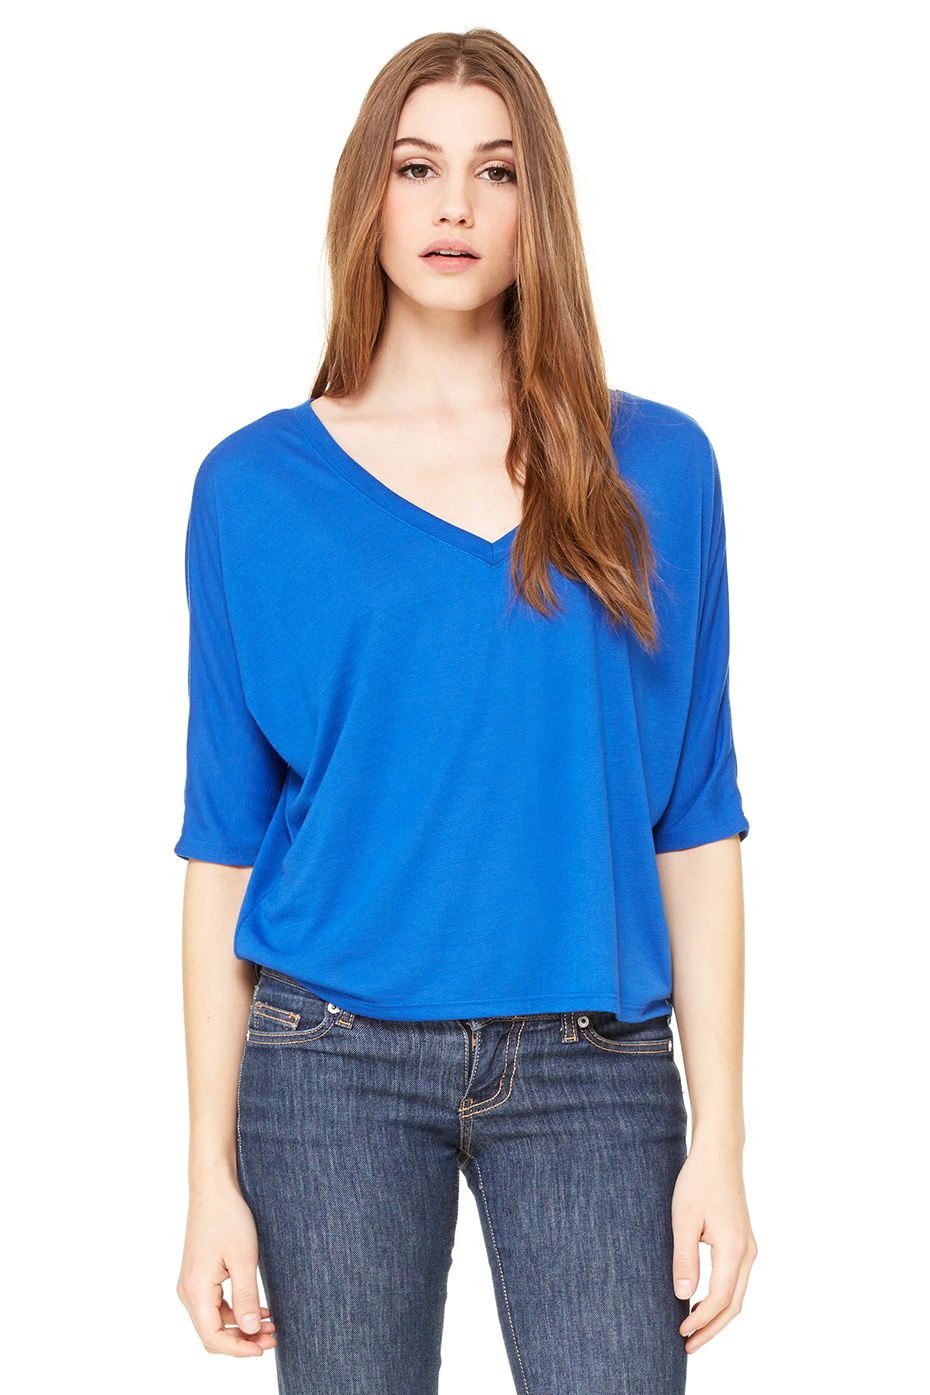 Women's Flowy Half-Sleeve Cropped V-Neck Tee